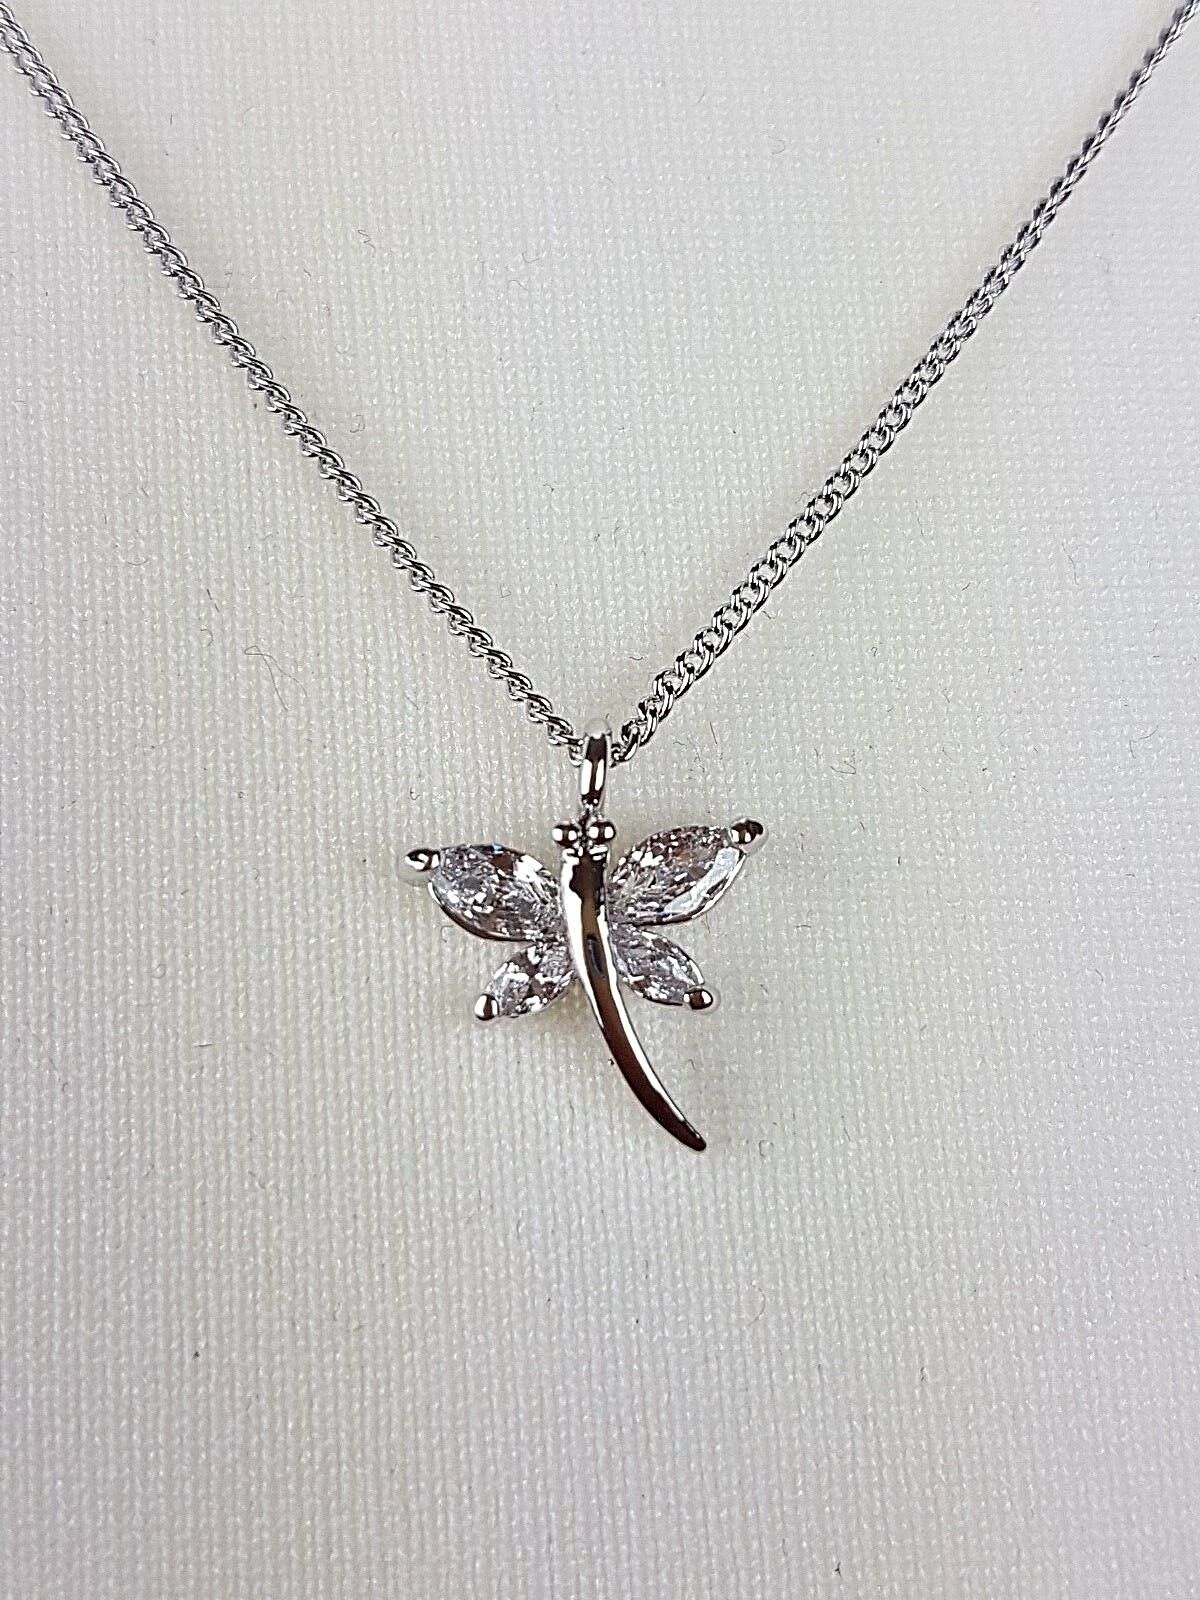 Ladies Girls Platinum Plated Friendship Sentiment Happiness Dragonfly Necklace